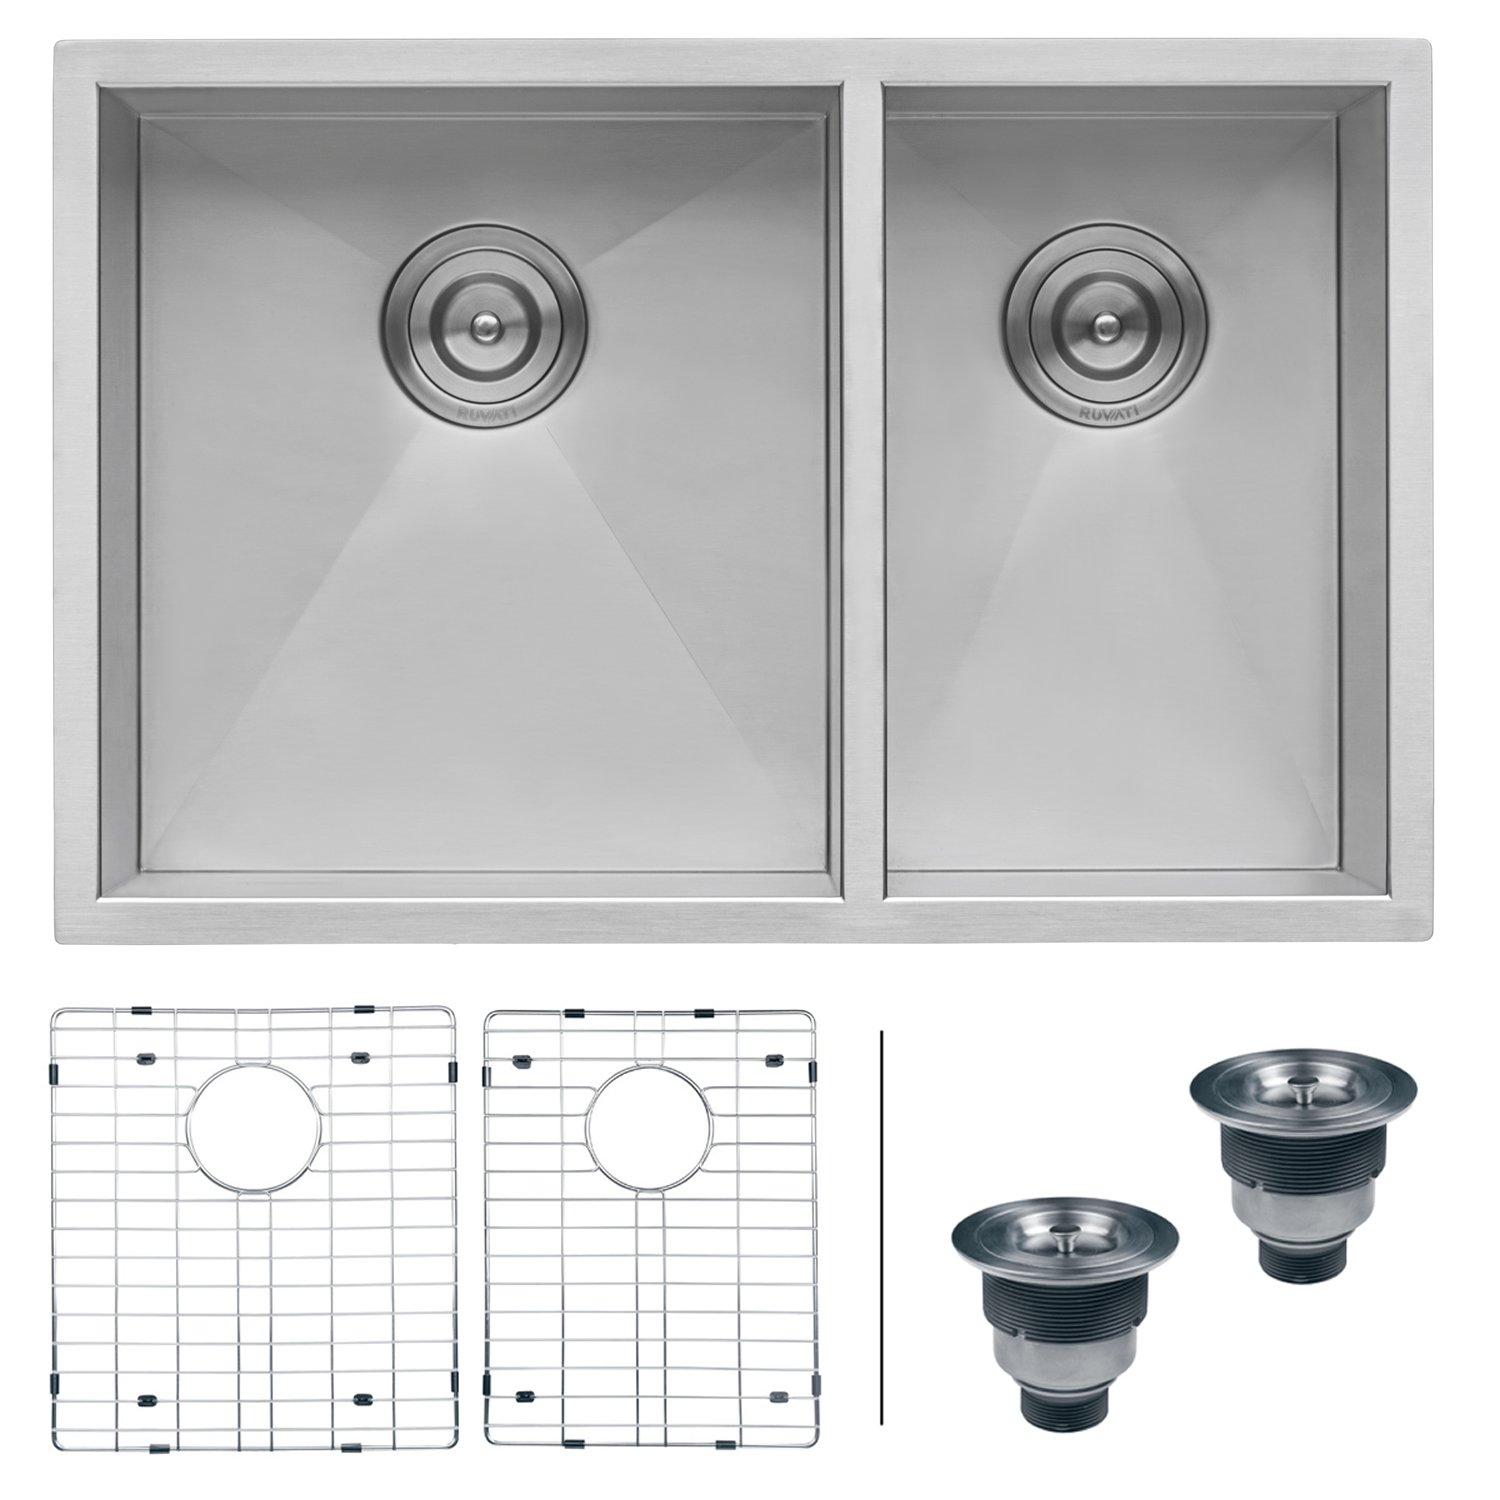 Ruvati 32-inch Undermount 60 40 Double Bowl Zero-Radius 16 Gauge Stainless Steel Kitchen Sink – RVH7515